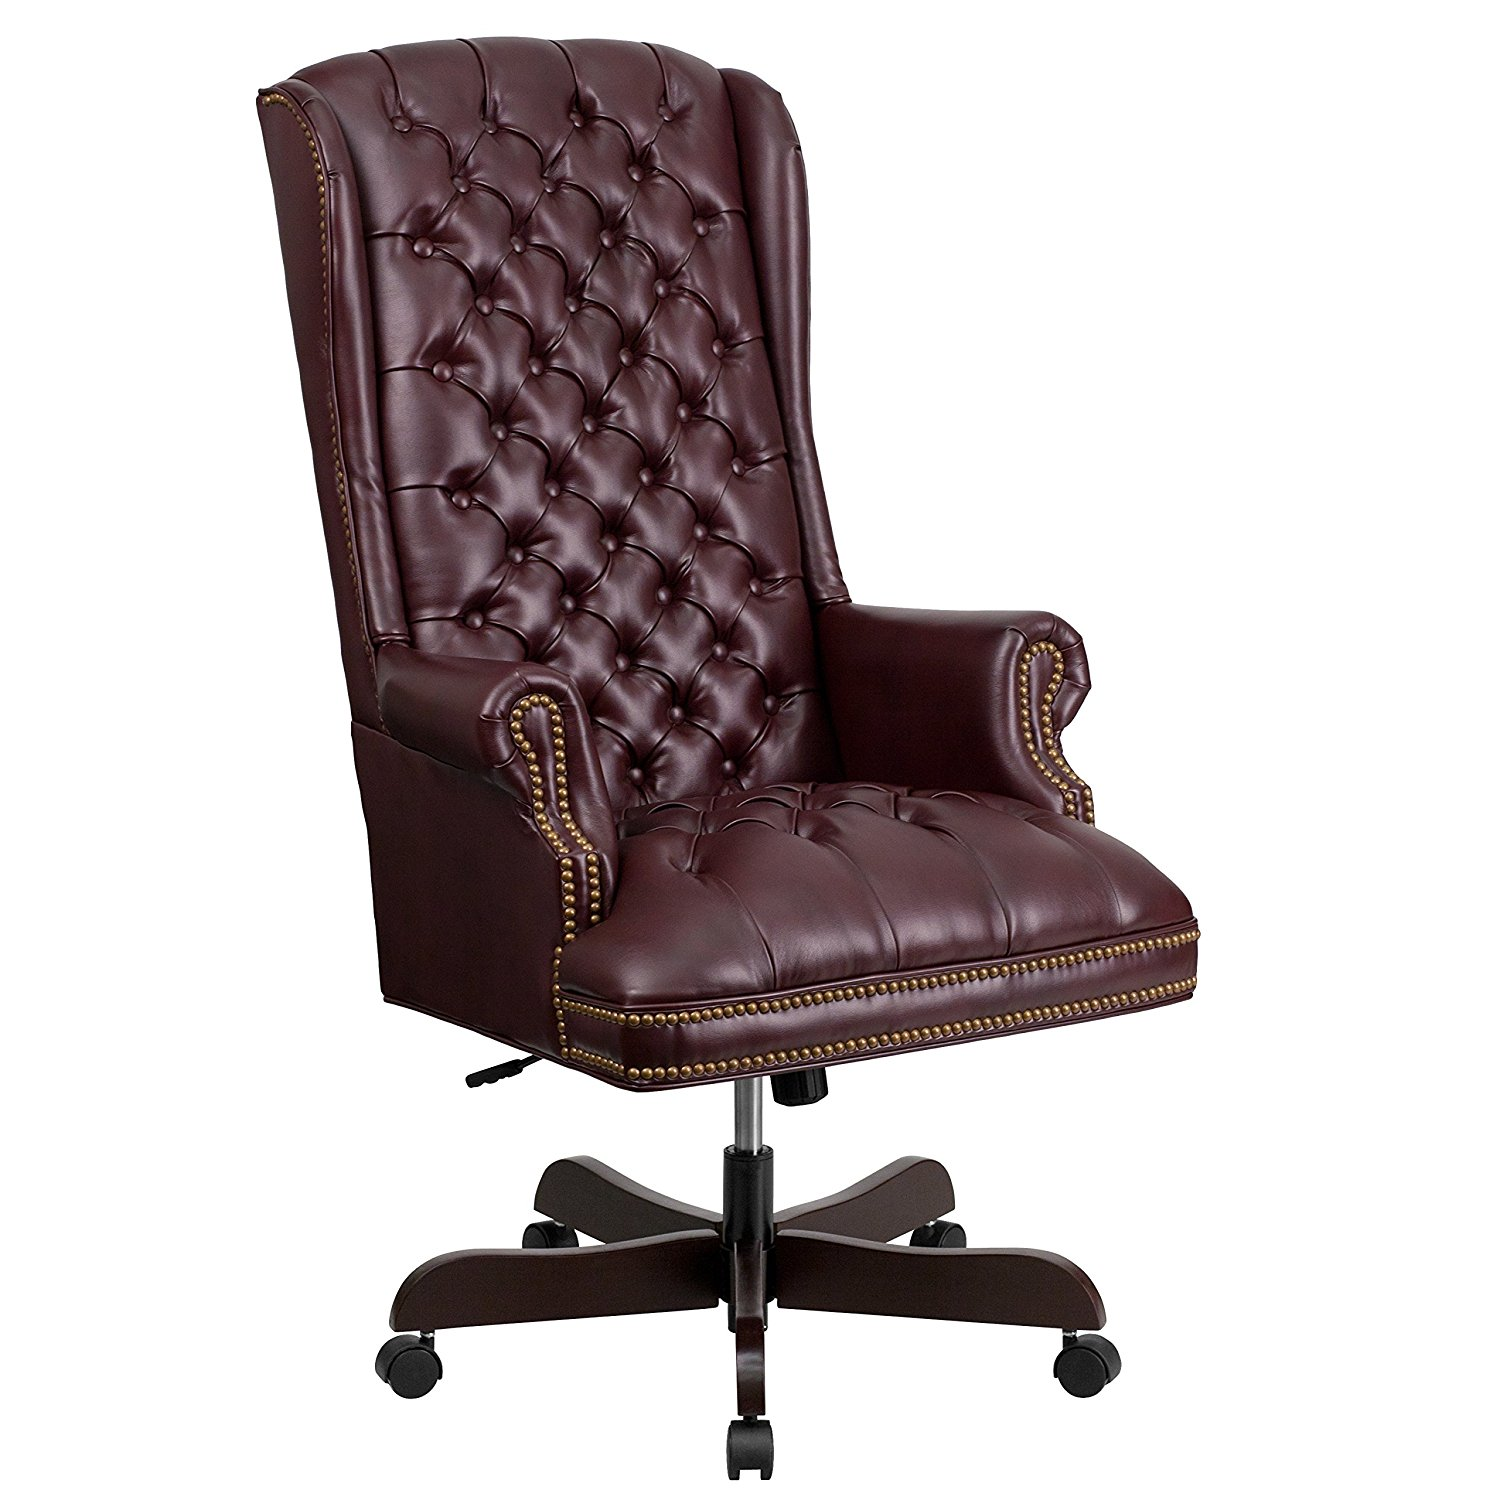 Details About Flash Furniture High Back Tufted Leather Executive Chair In Burgundy Finish New